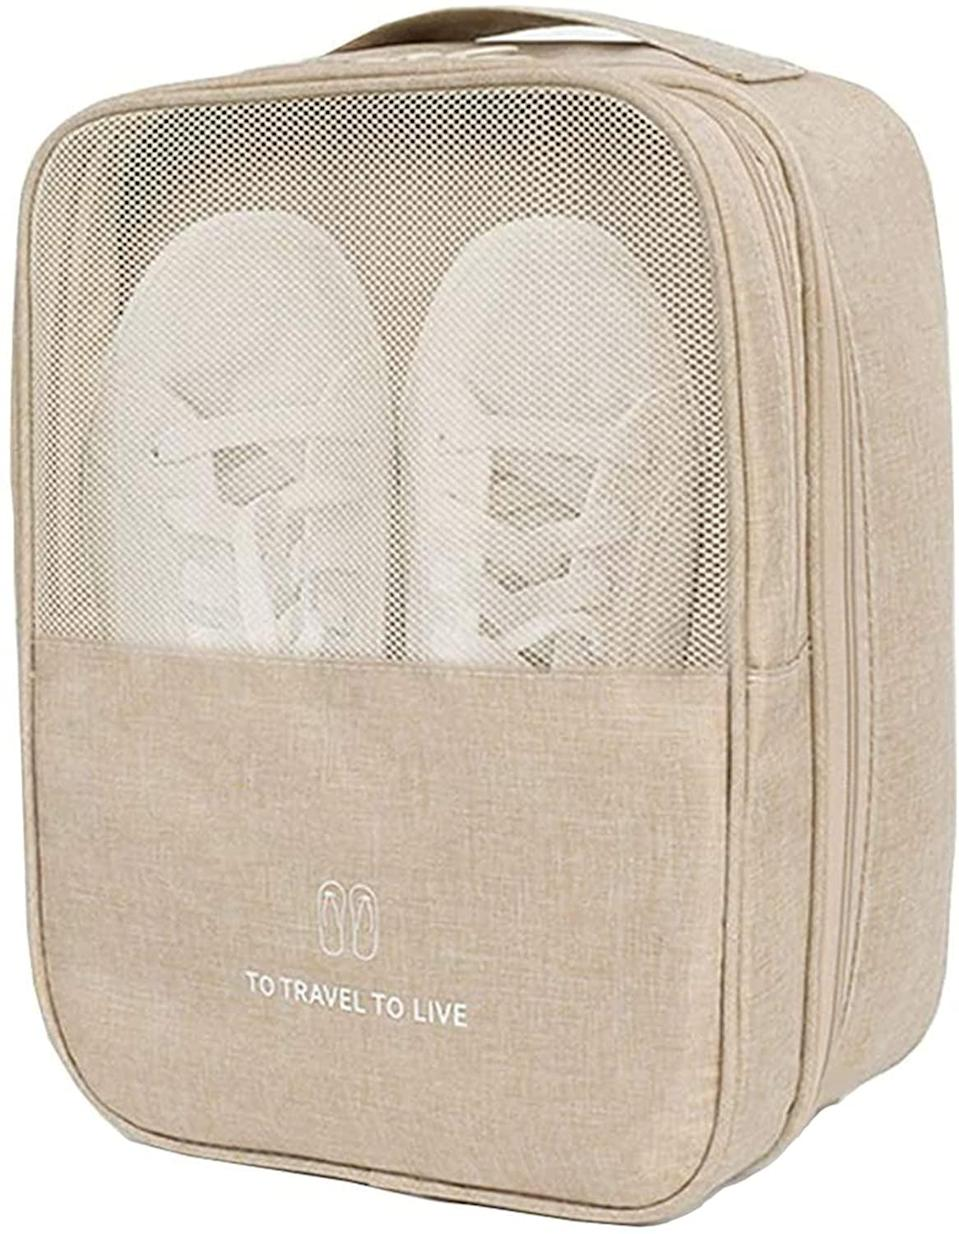 <p>Whether you go to the gym or love to travel, the <span>Cinlitek Travel Shoe Bag</span> ($14) will come in handy. It's waterproof and holds three pairs of shoes.</p>